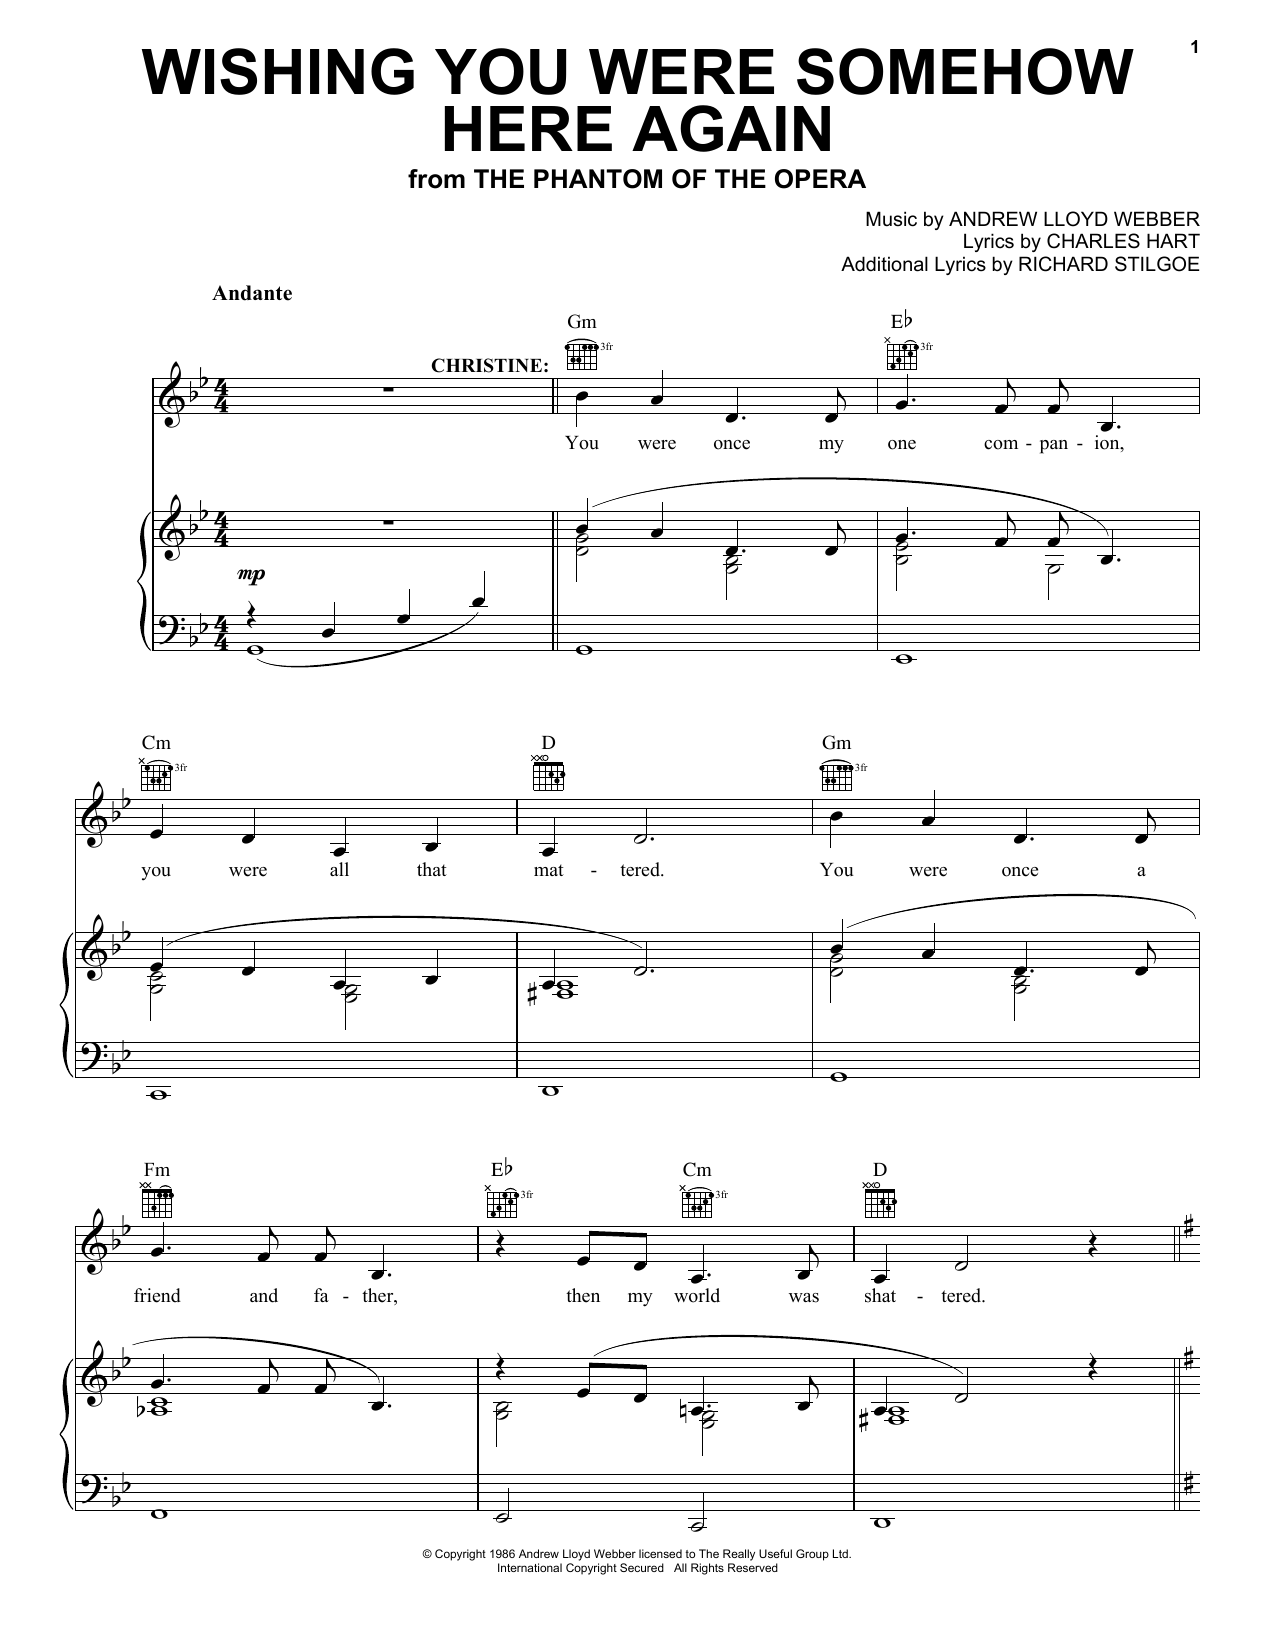 Andrew Lloyd Webber Wishing You Were Somehow Here Again (from The Phantom Of The Opera) sheet music preview music notes and score for Piano, Vocal & Guitar (Right-Hand Melody) including 5 page(s)